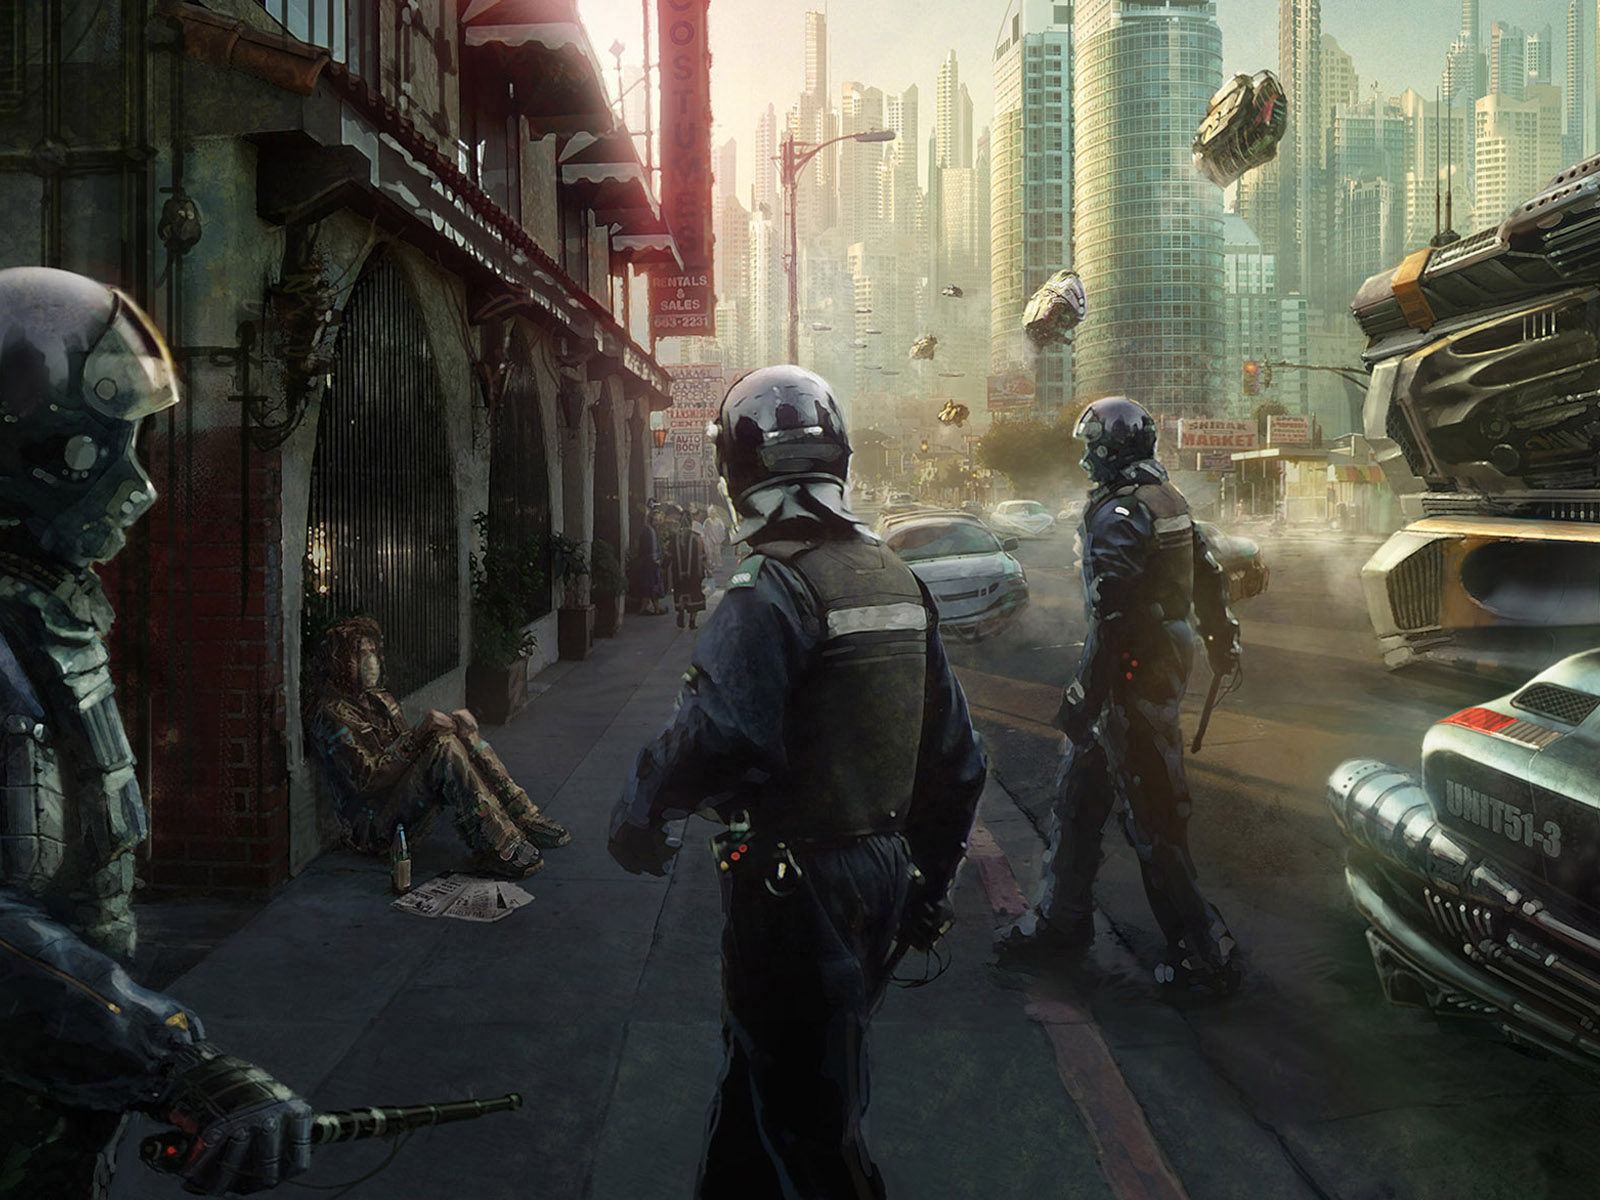 1600x1200 Future police officers desktop wallpapers and stock photos